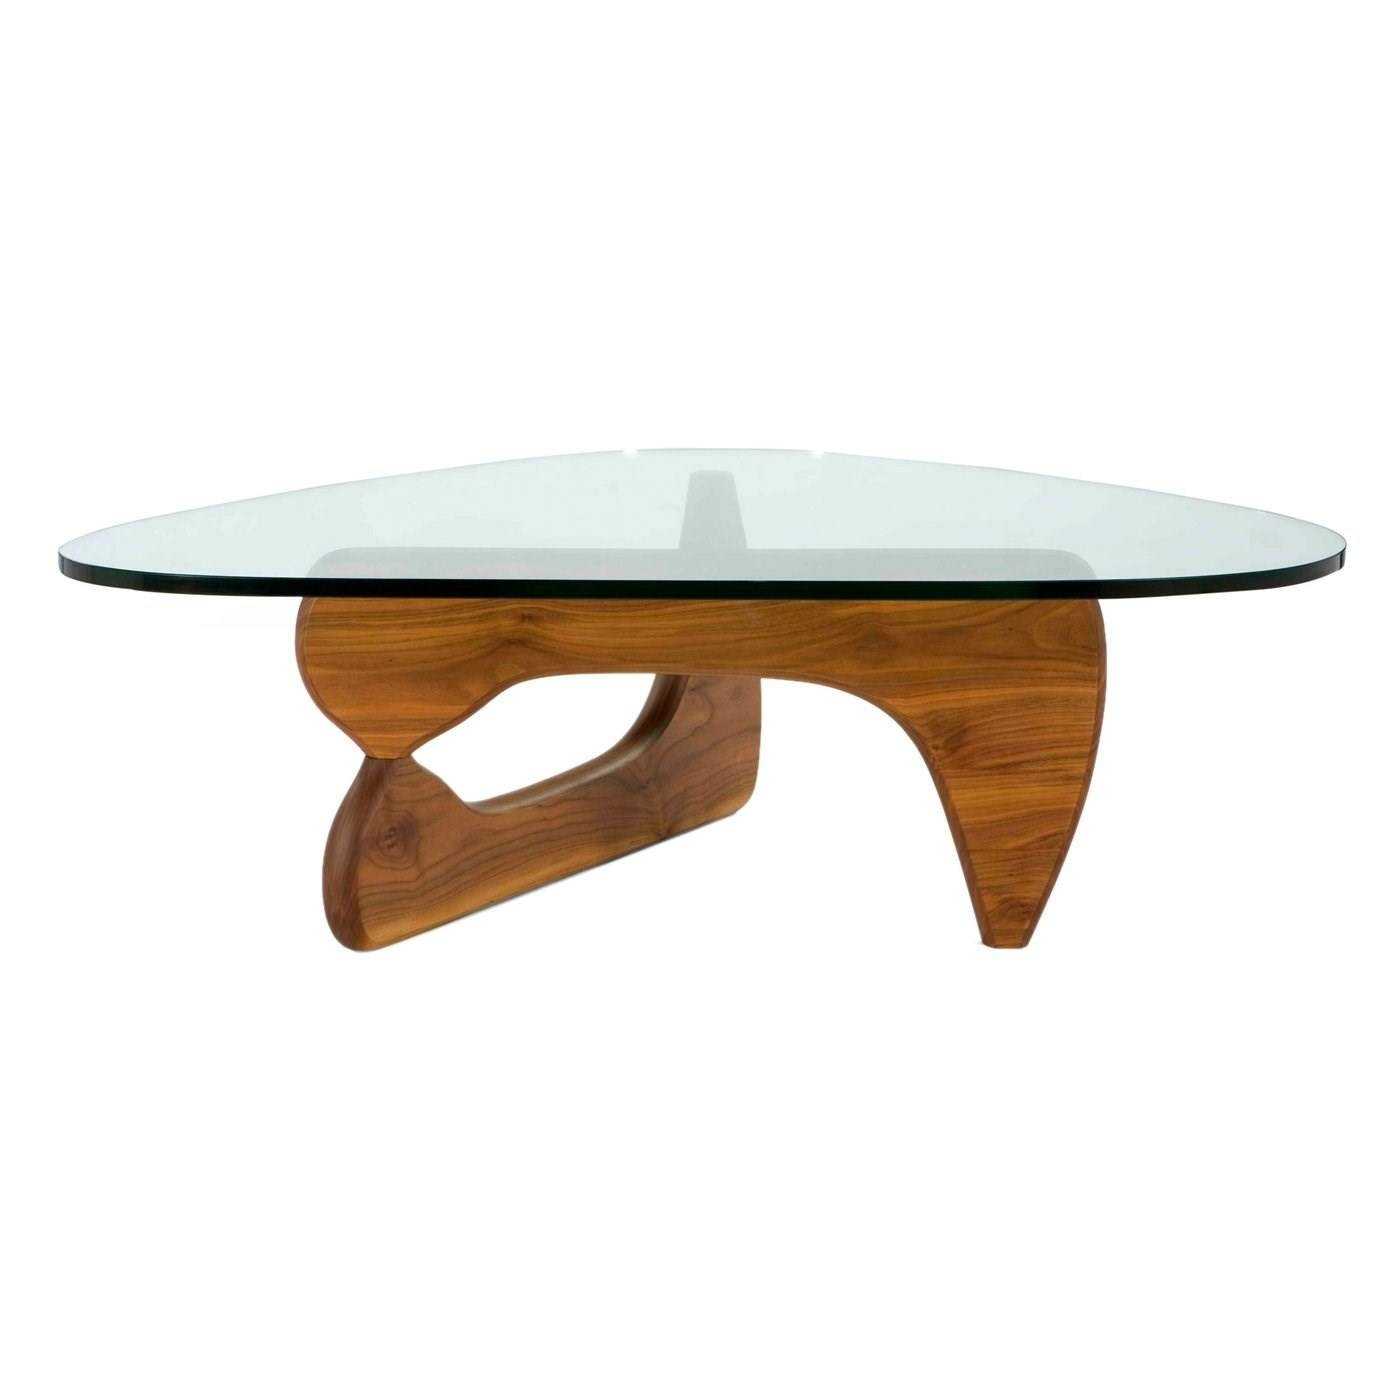 Aeon Furniture Ct3001-Sw0 Tokyo Coffee Table - Homeclick with regard to Tokyo Coffee Tables (Image 1 of 30)